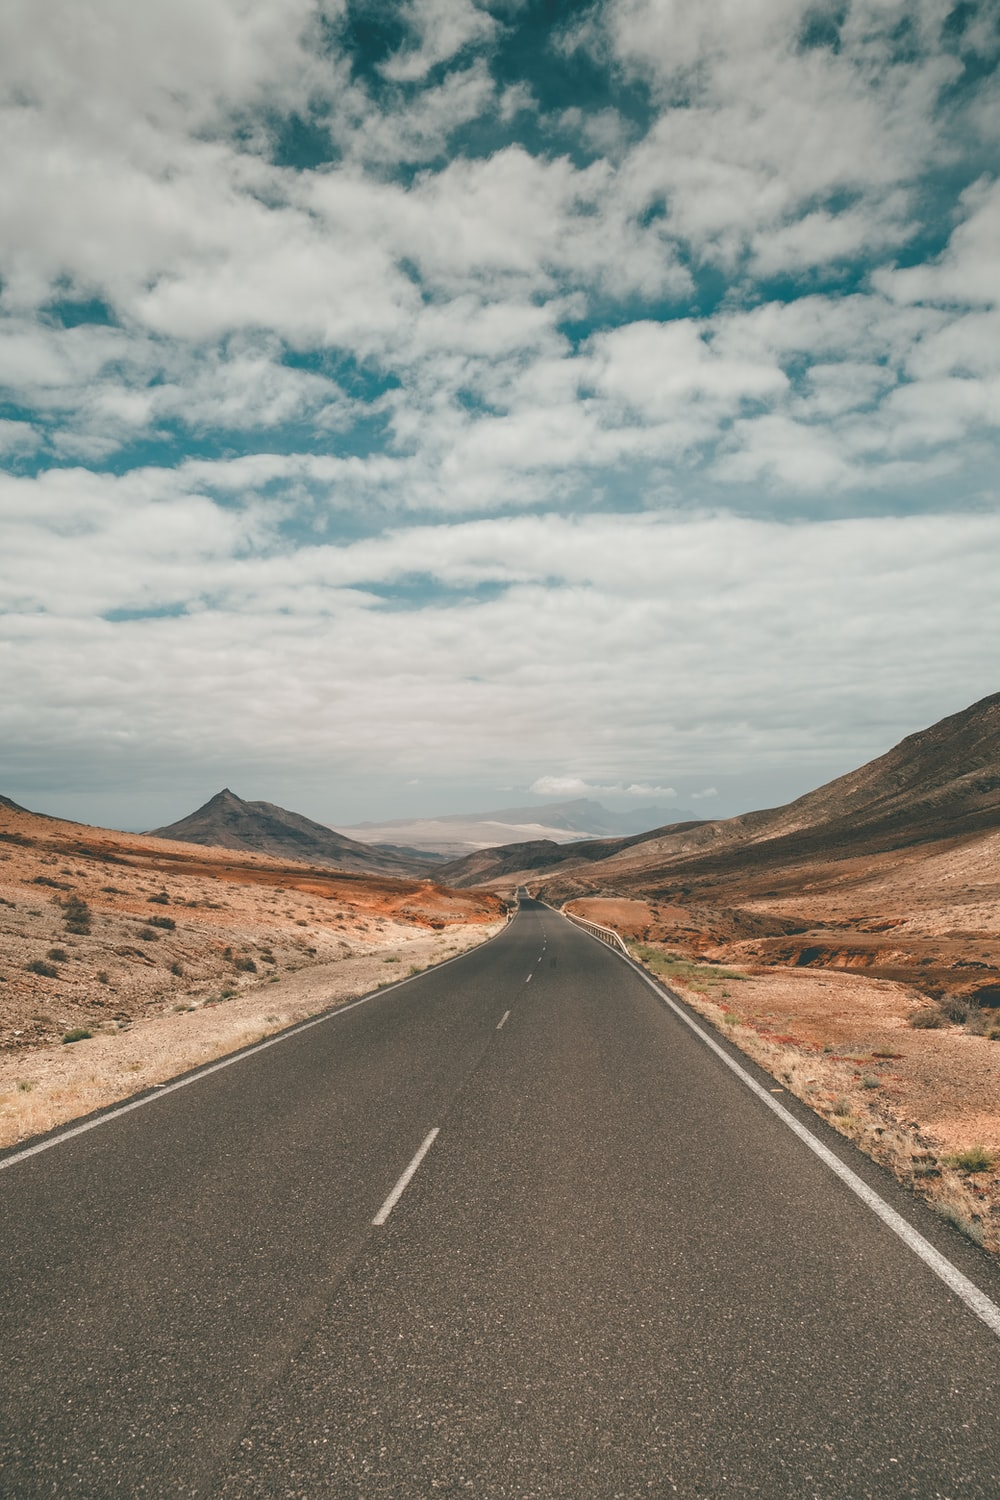 black asphalt road between brown mountains under white clouds and blue sky during daytime